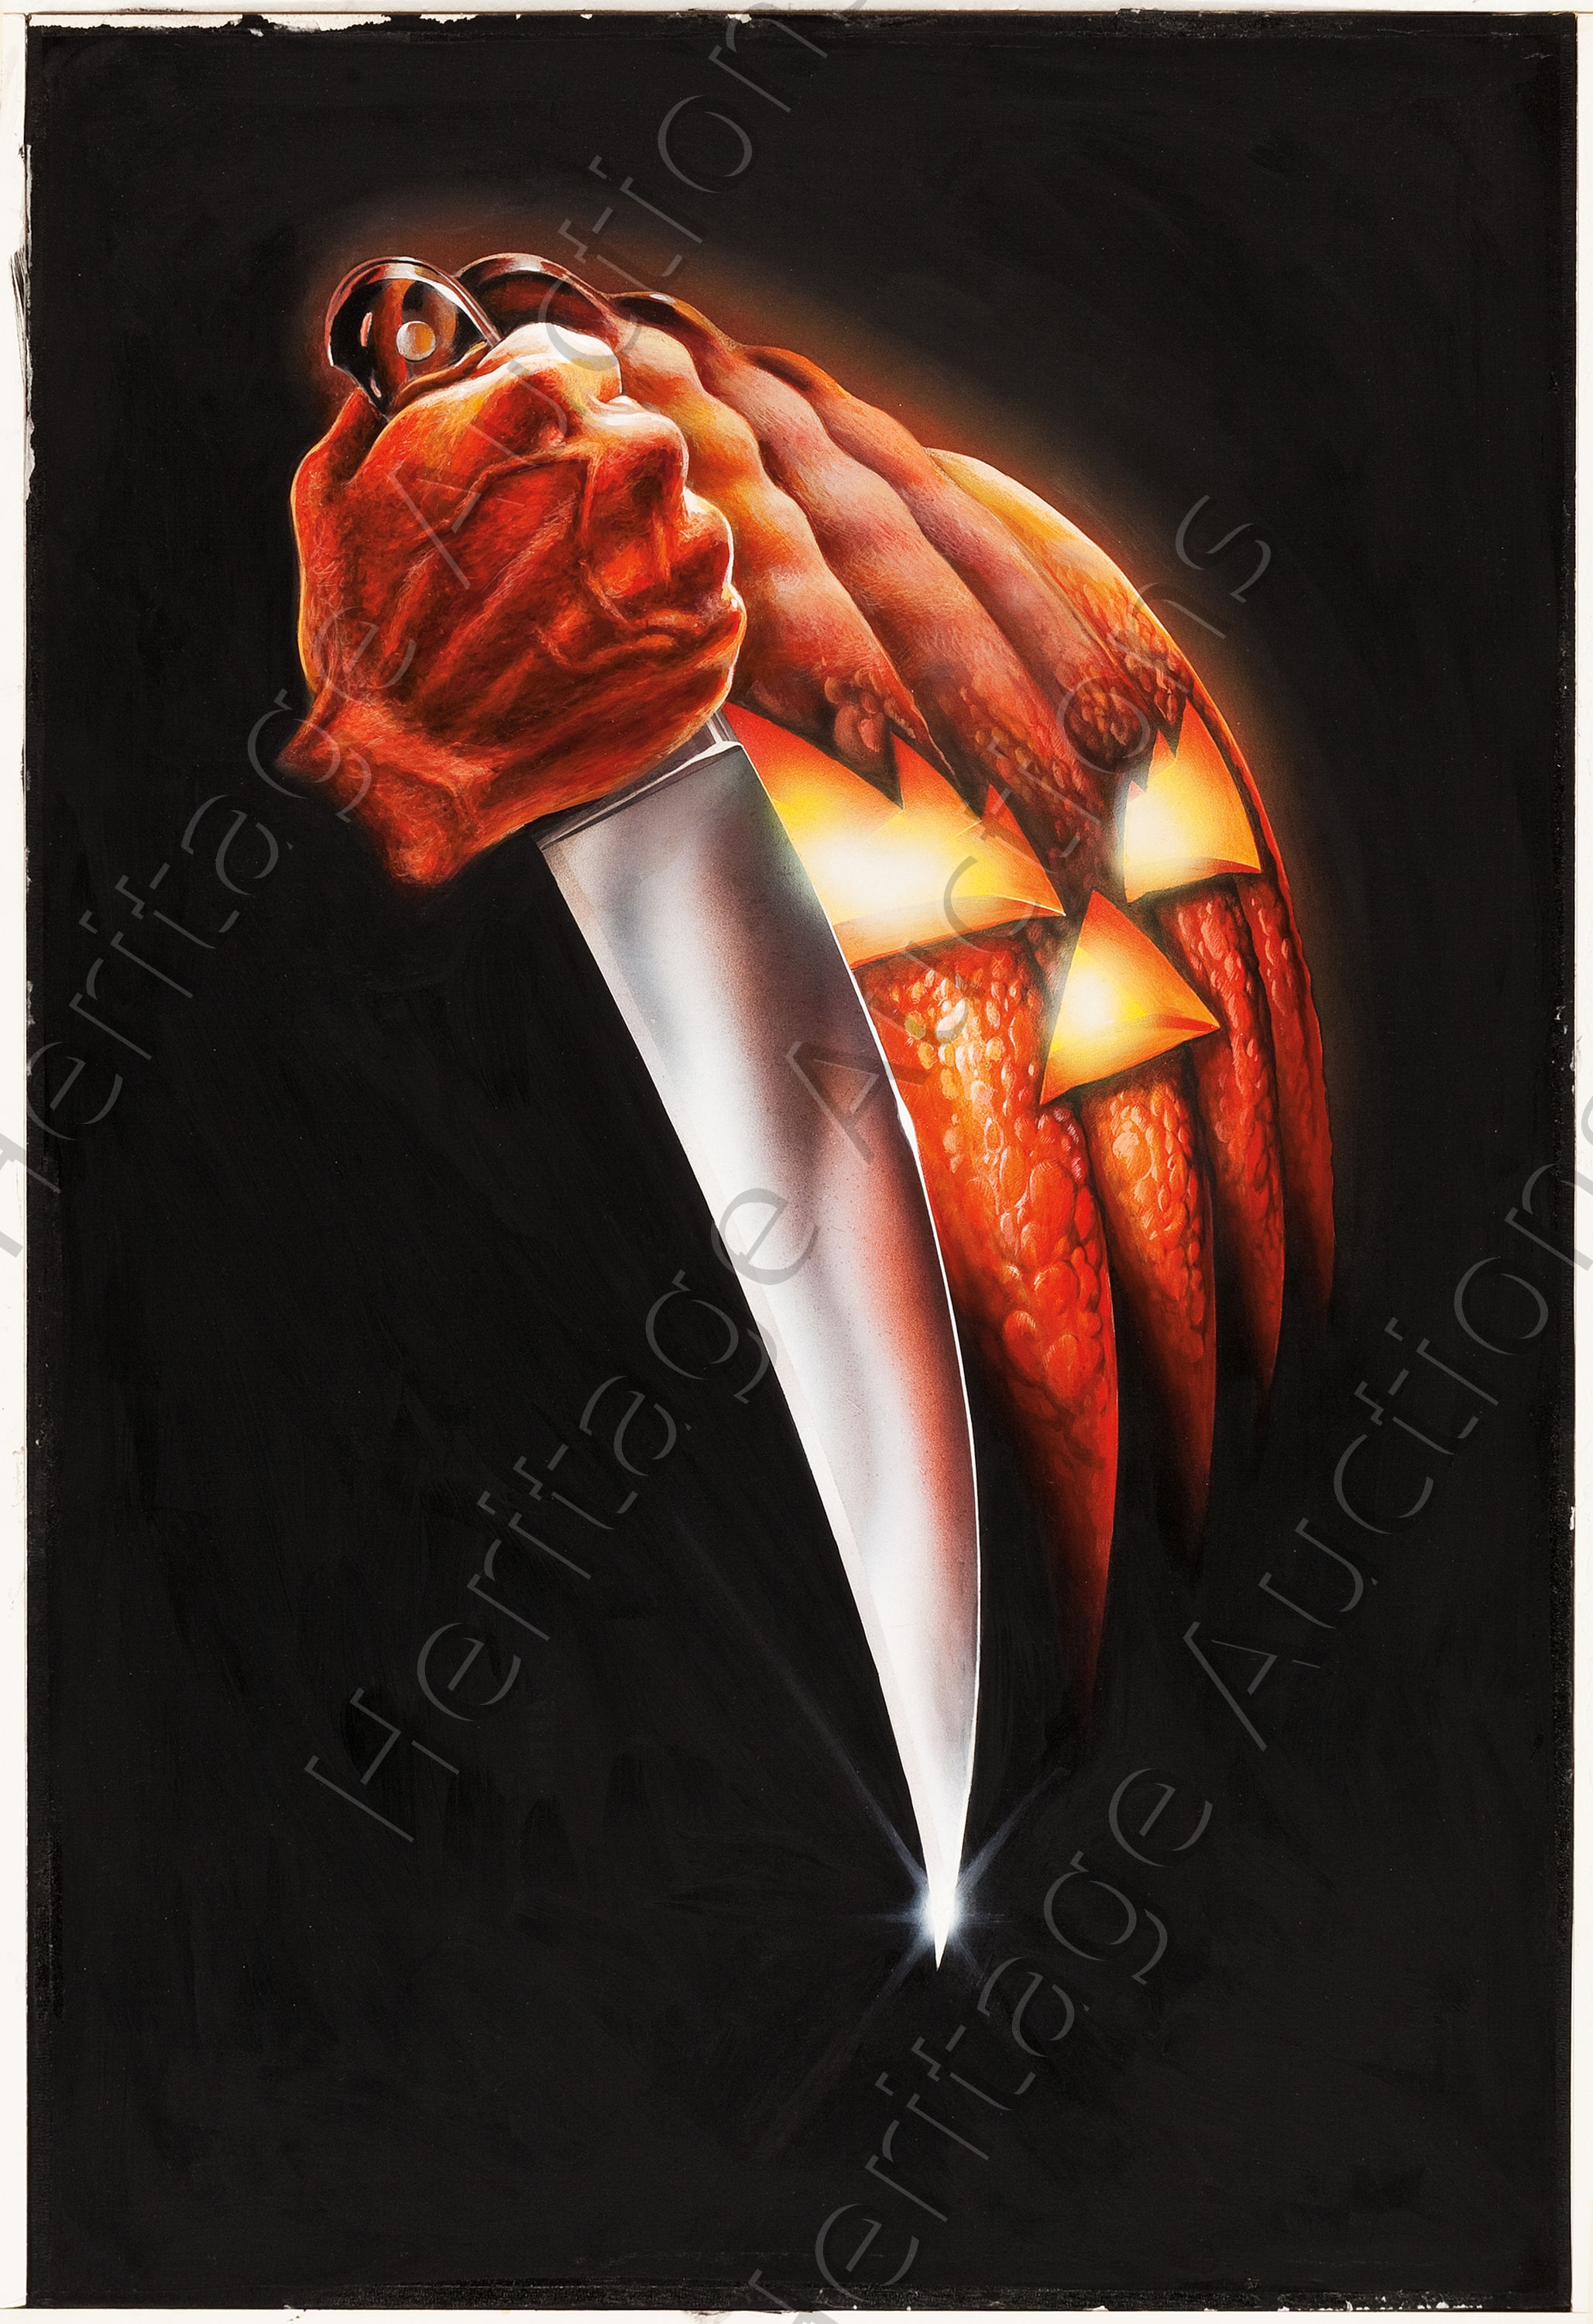 Original Poster Art from Carpenter's HALLOWEEN Up For Auction ...